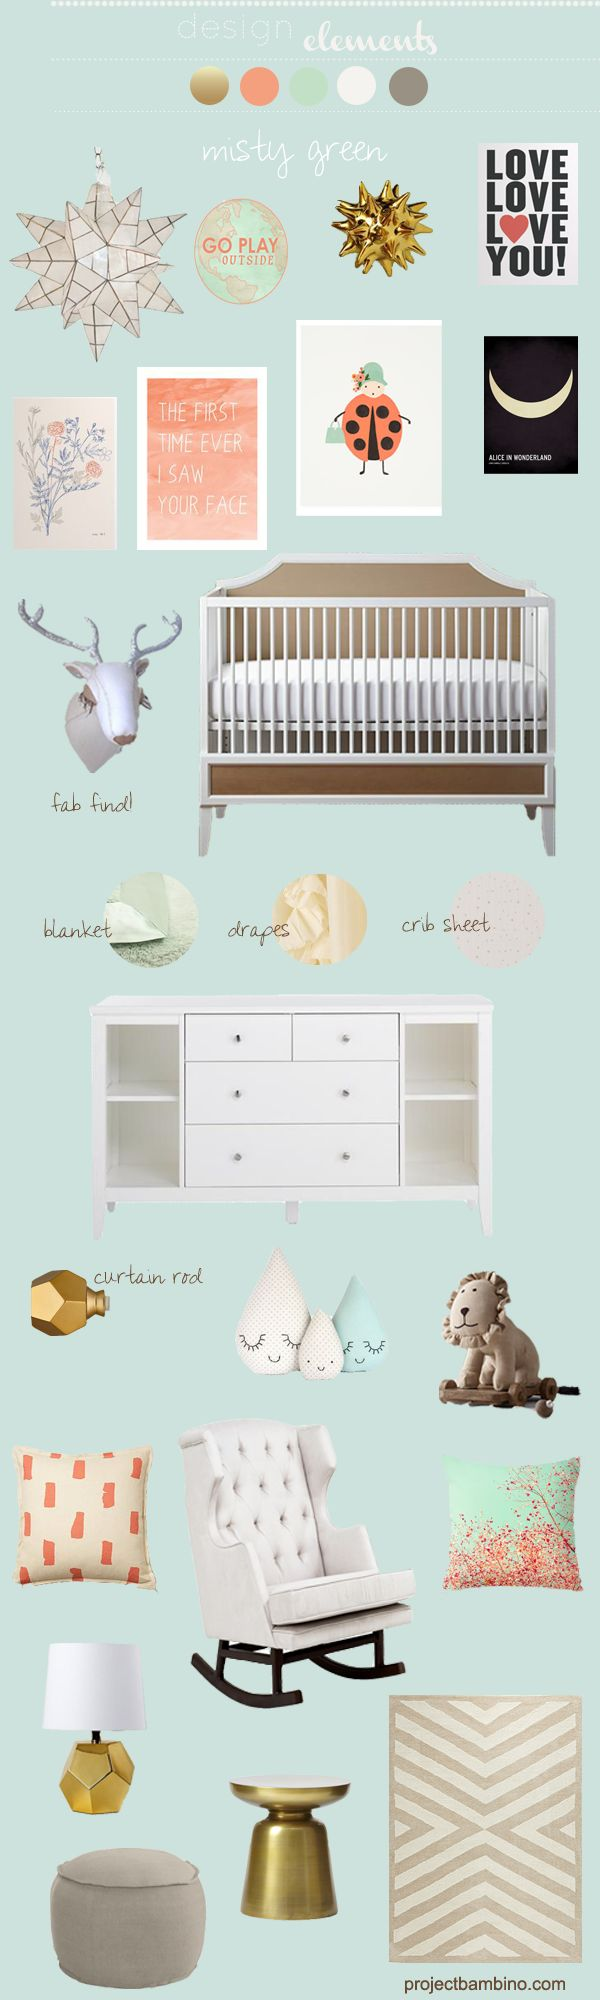 coral and misty green nursery inspiration